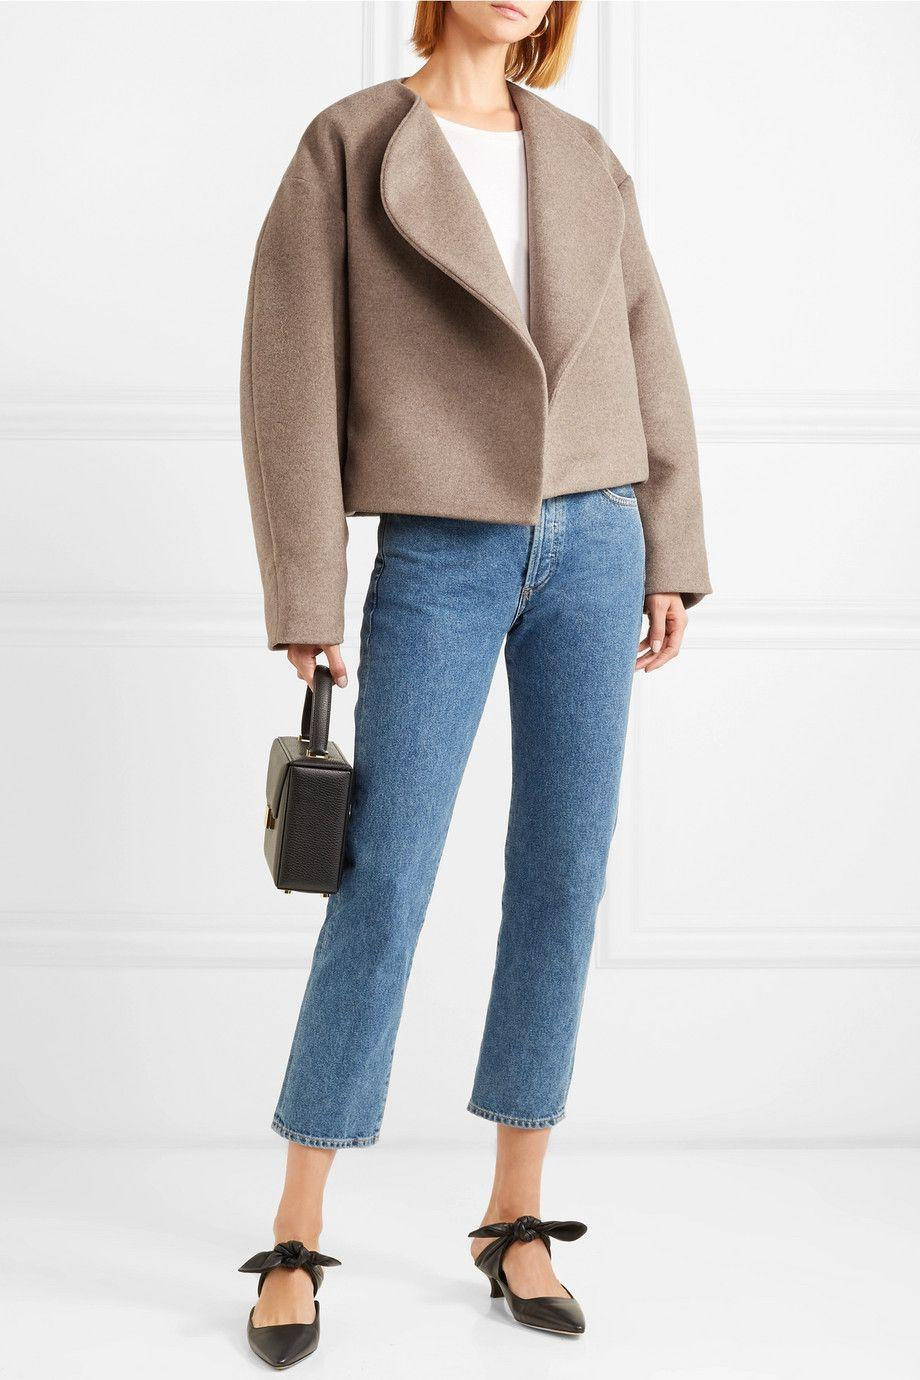 Layer a tan jacket over it for the fall months.